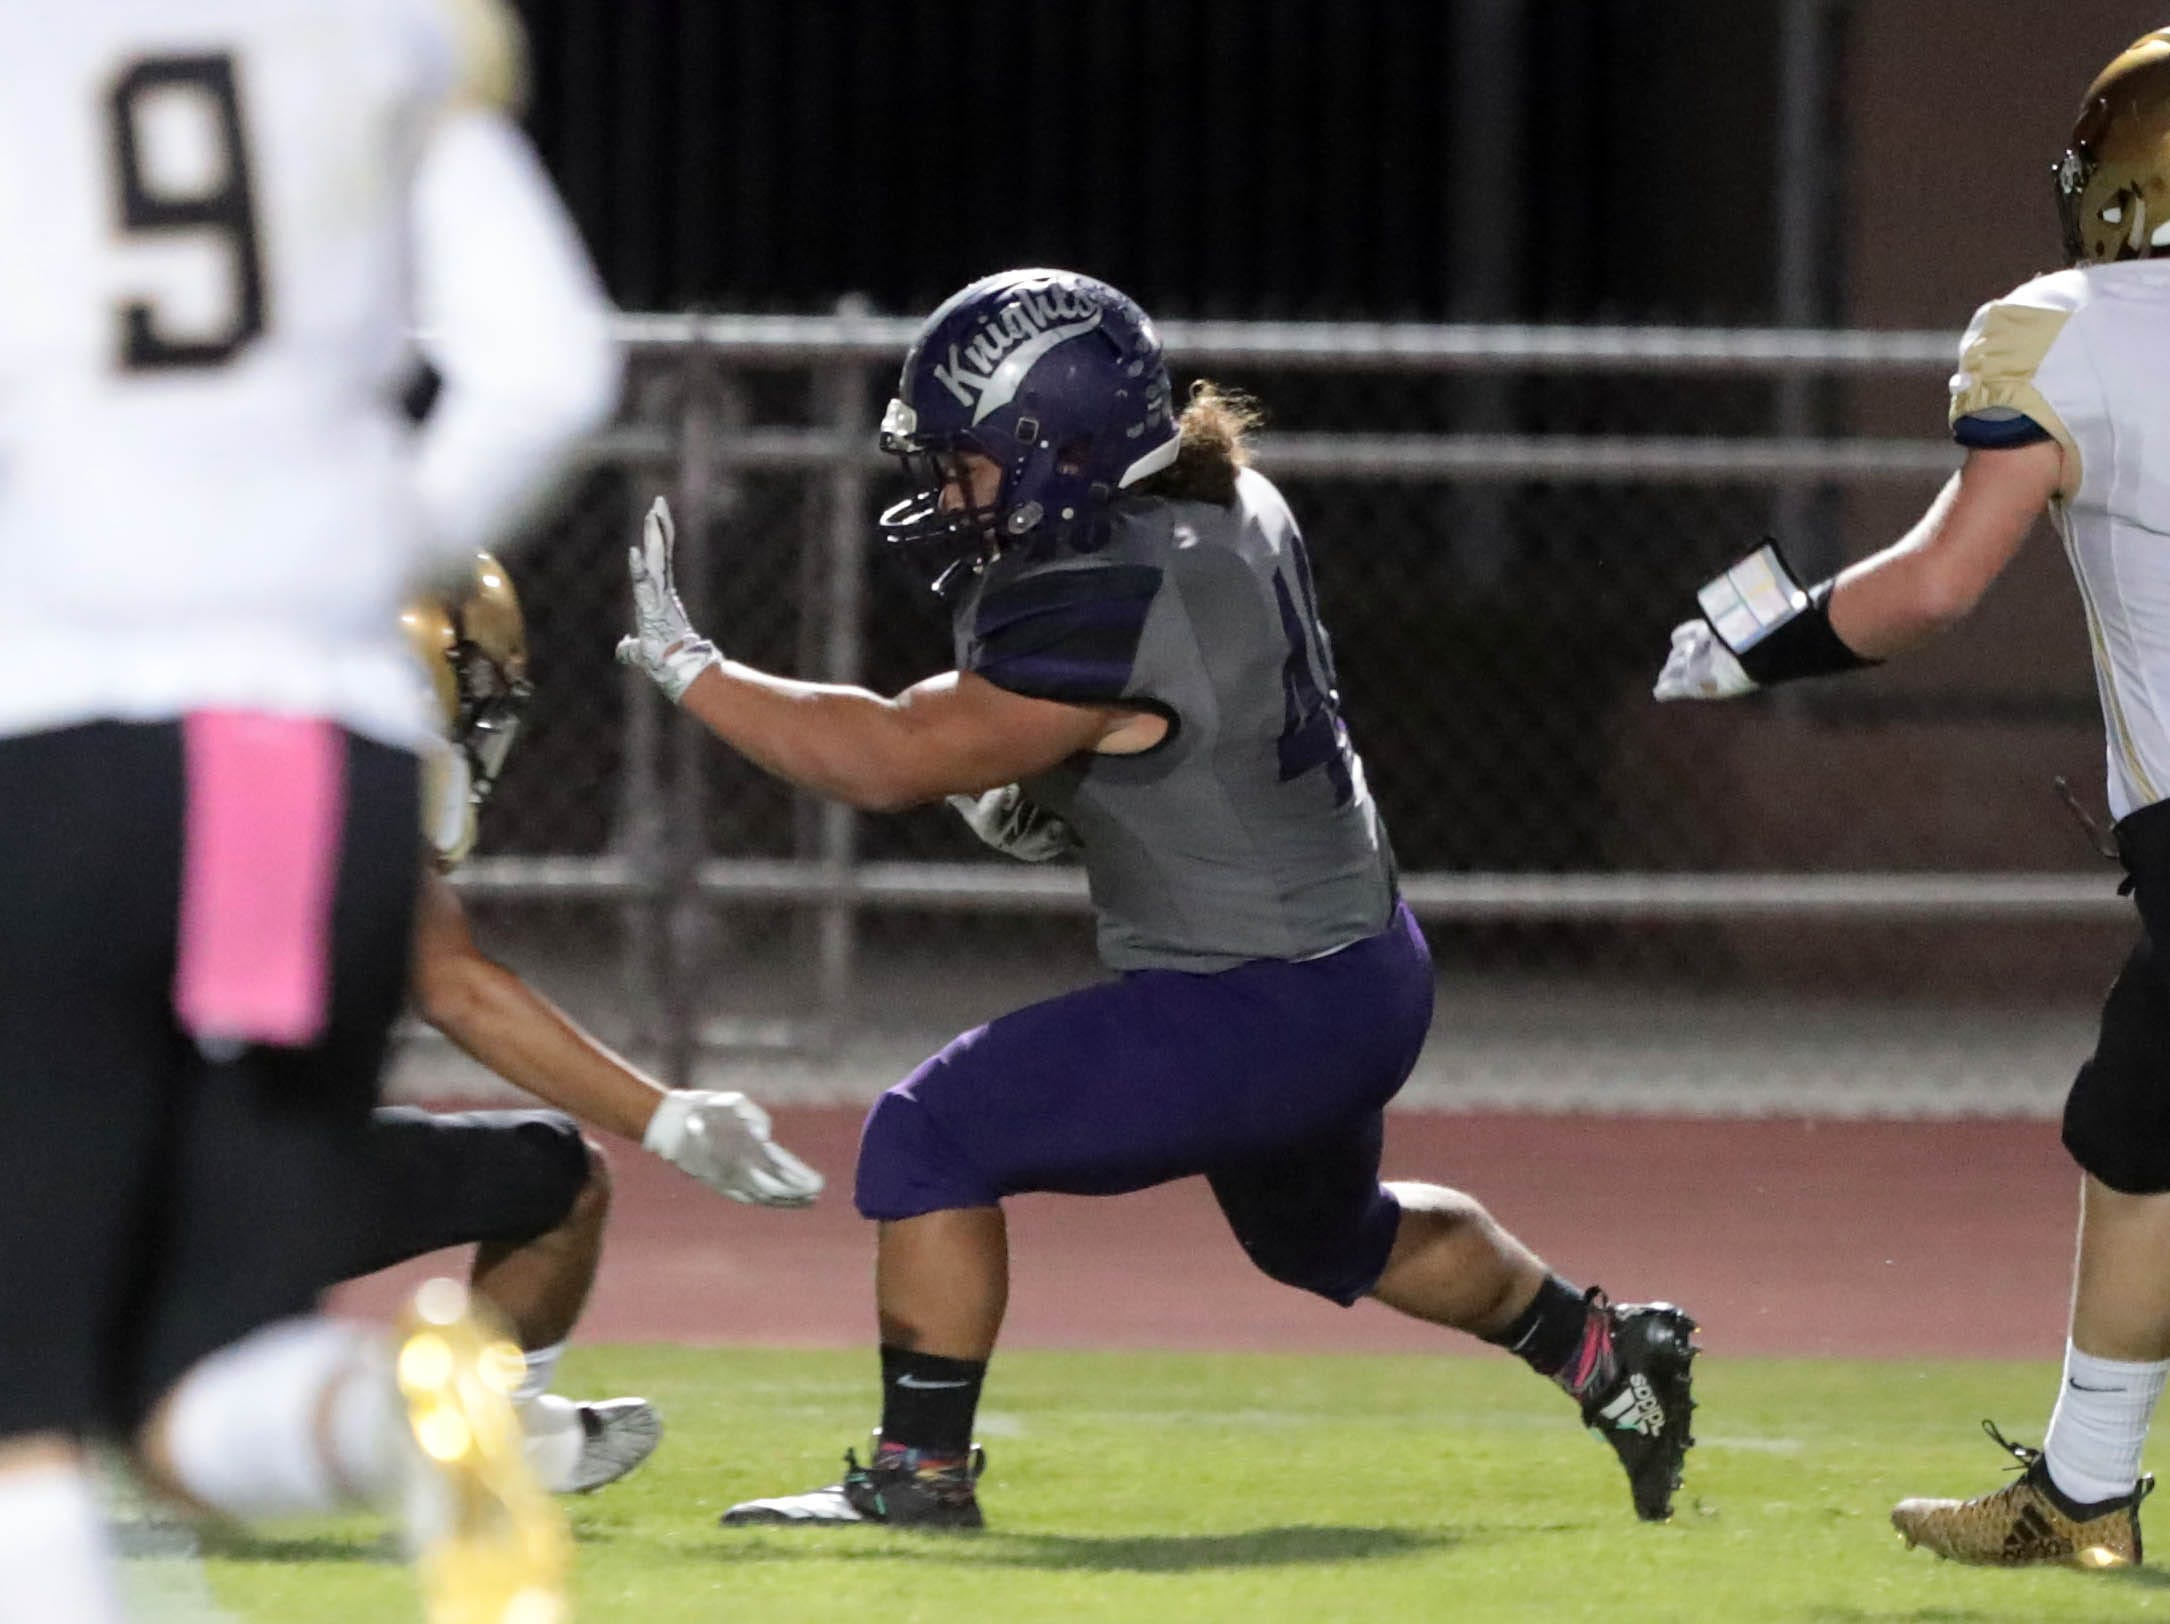 Shadow Hills' Chris Morgan carries the ball for a first down against Xavier Prep on Thursday, October 11, 2018 in Indio.